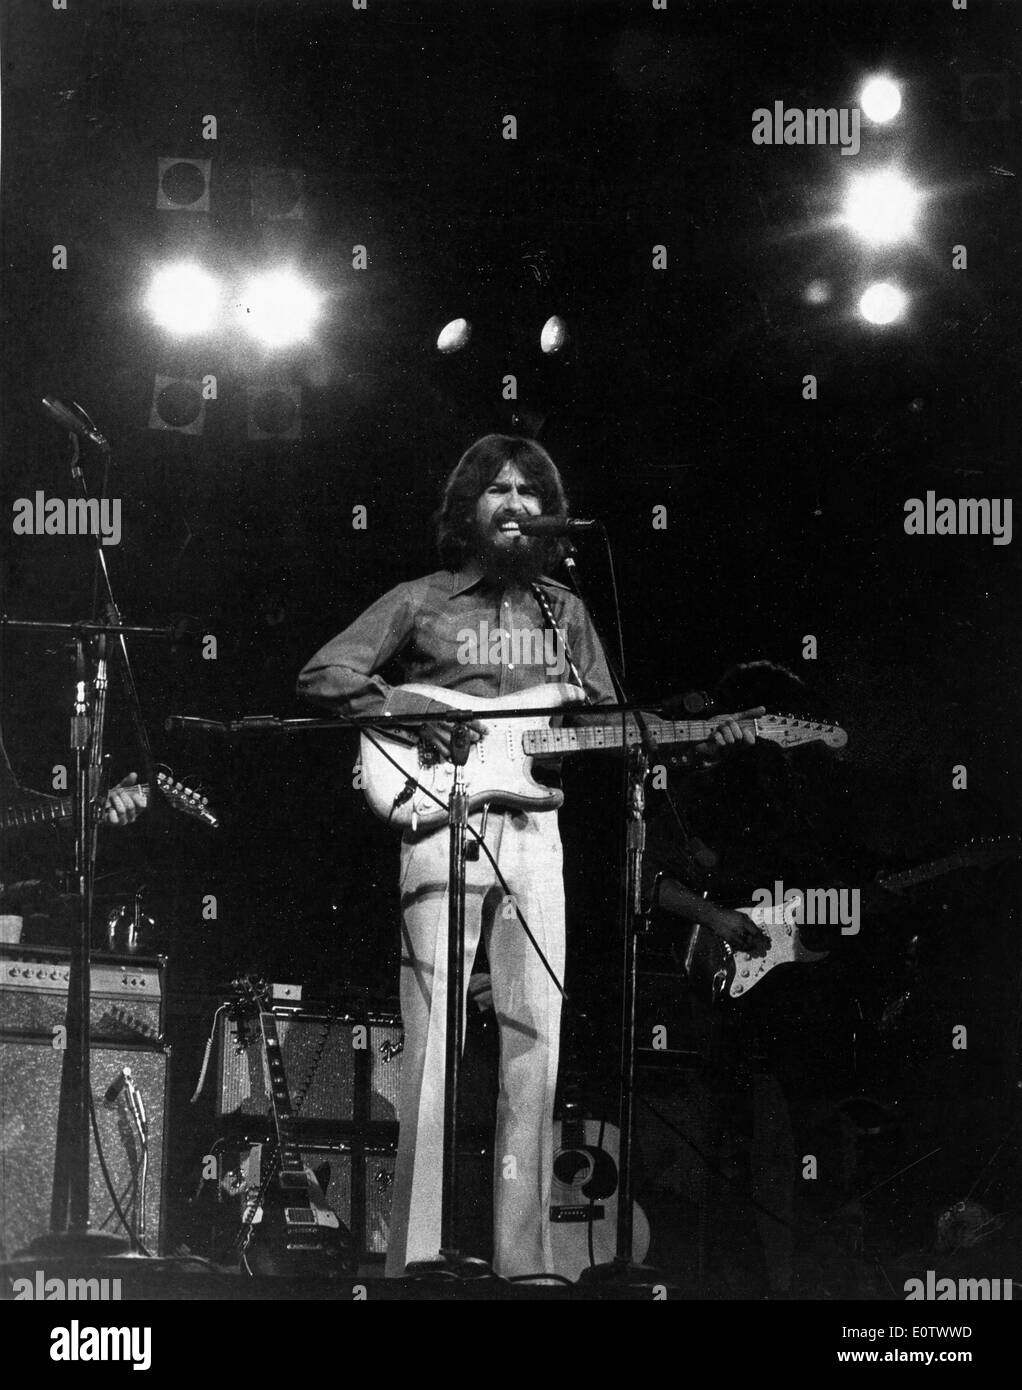 Beatle George Harrison performs in concert - Stock Image